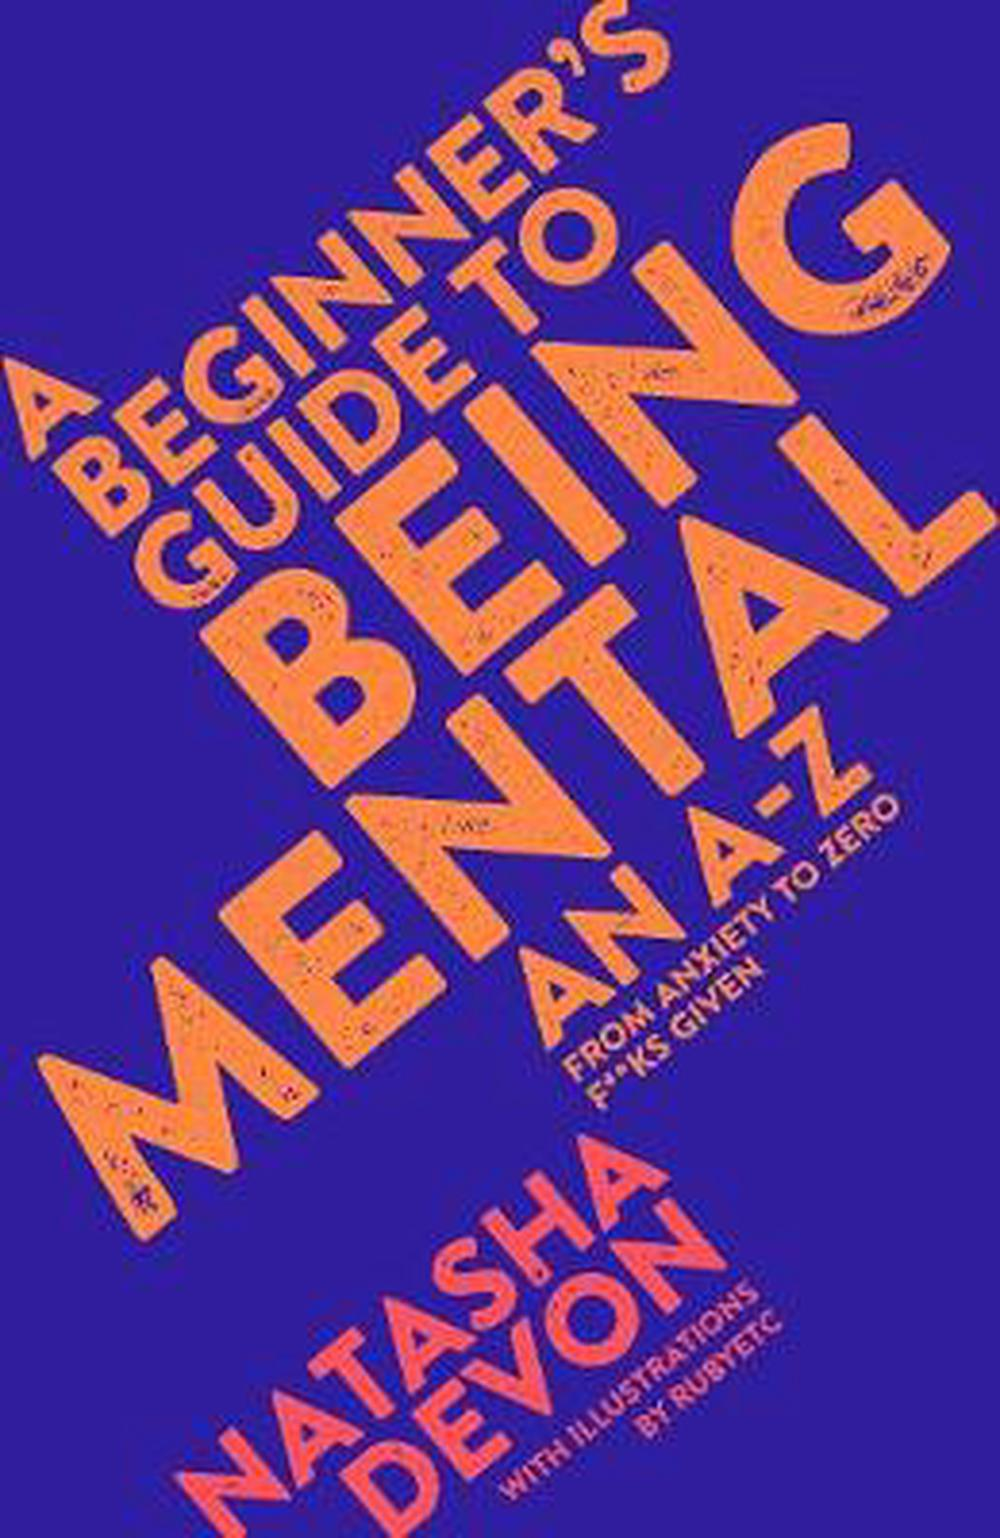 Beginner's Guide to Being Mental